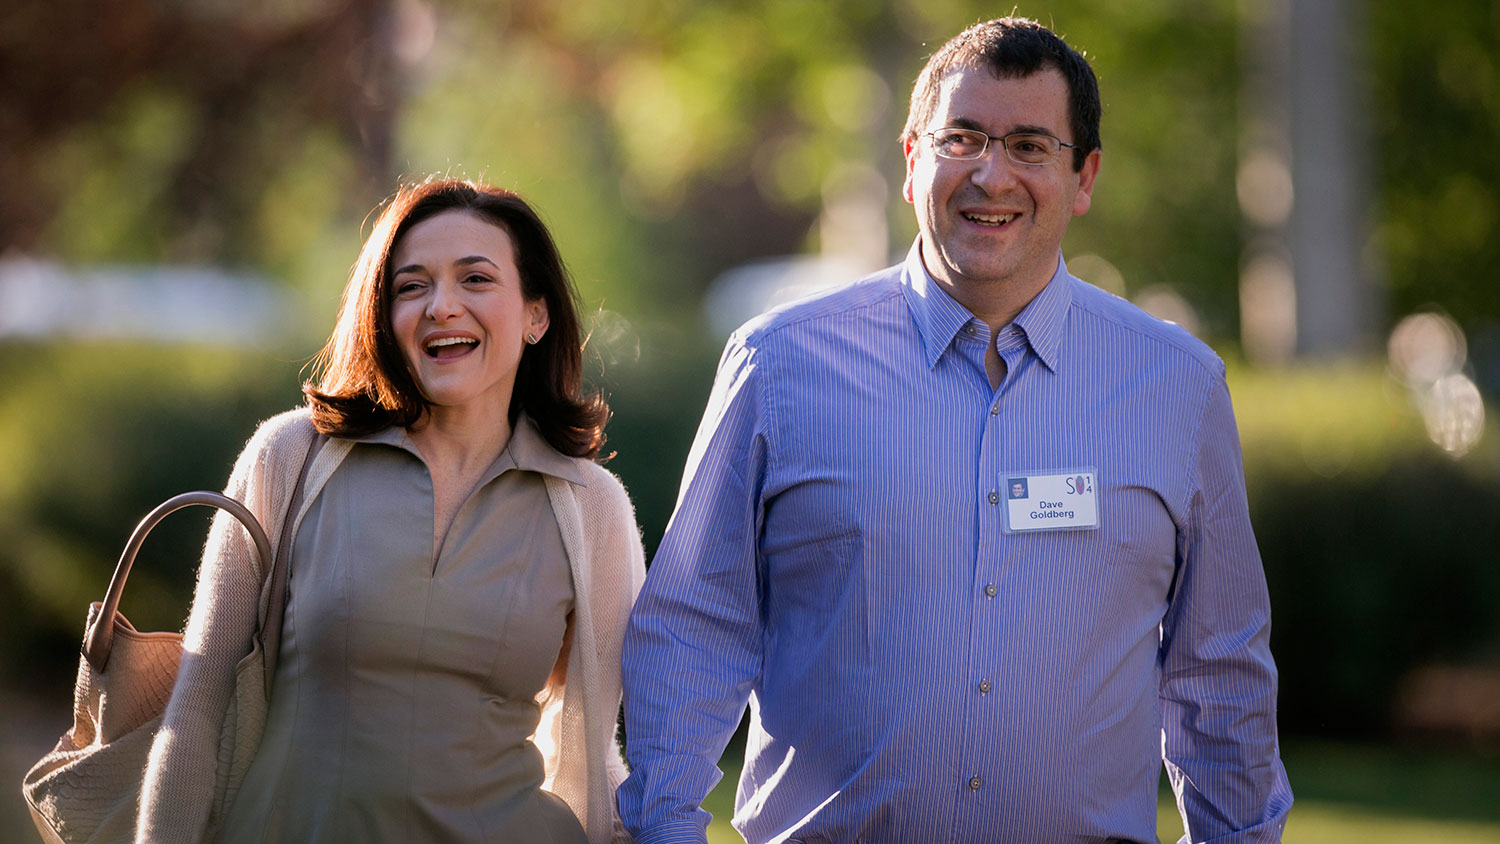 Goldberg and his wife, Sheryl Sandberg, at the Allen and Co. Media and Technology Conference in Sun Valley, Idaho, onJuly 9, 2014.